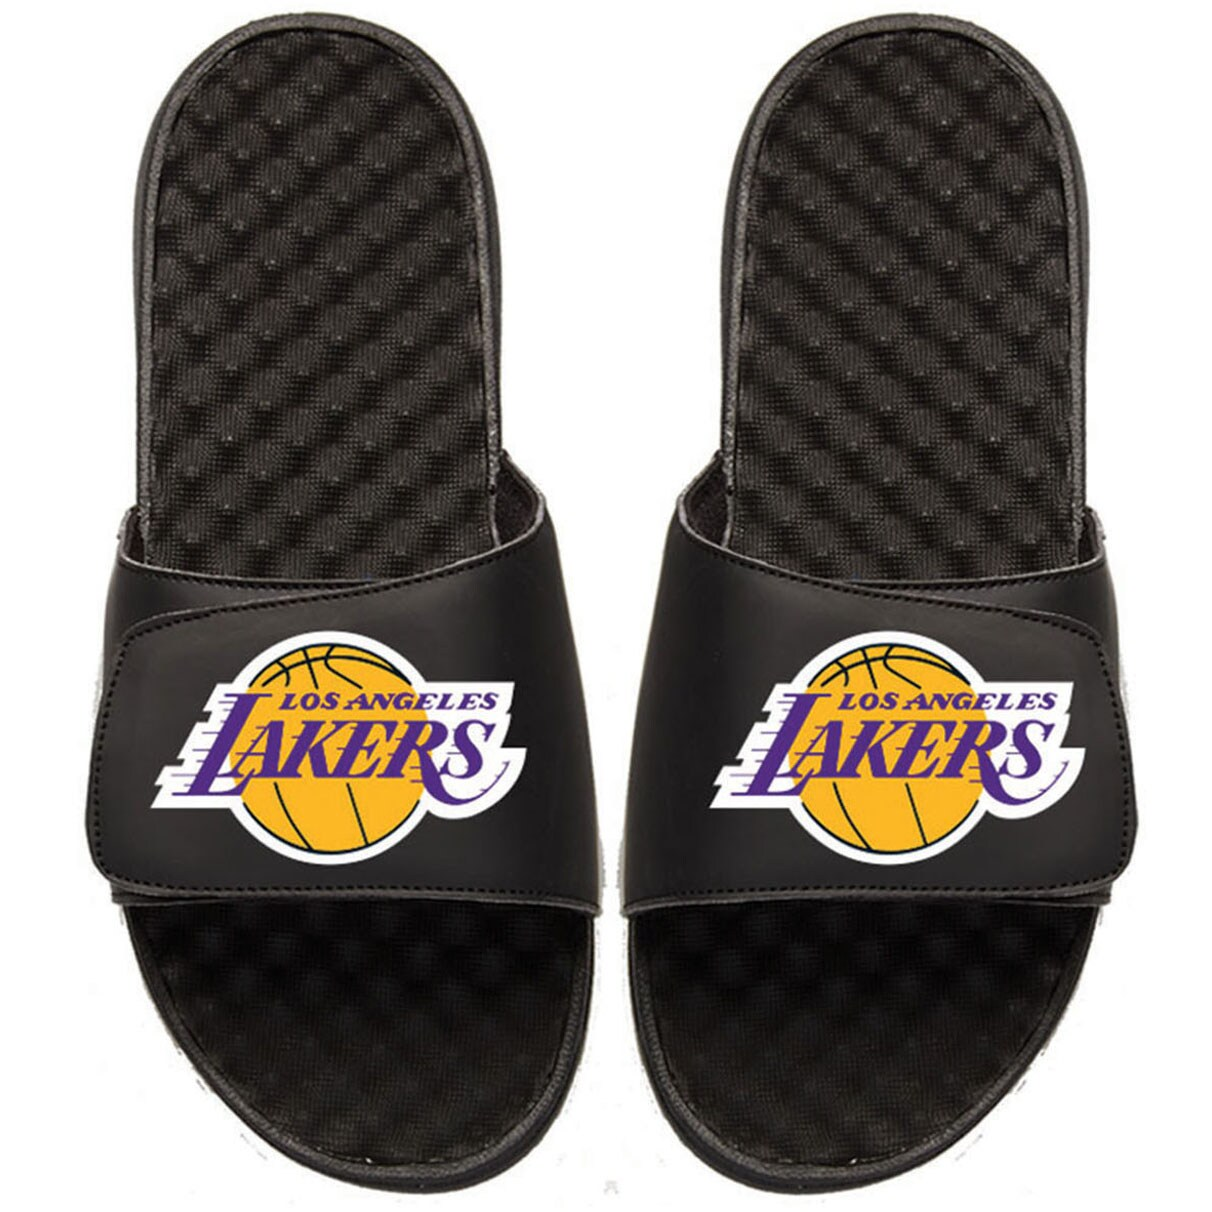 Los Angeles Lakers Youth Primary iSlide Sandals - Black